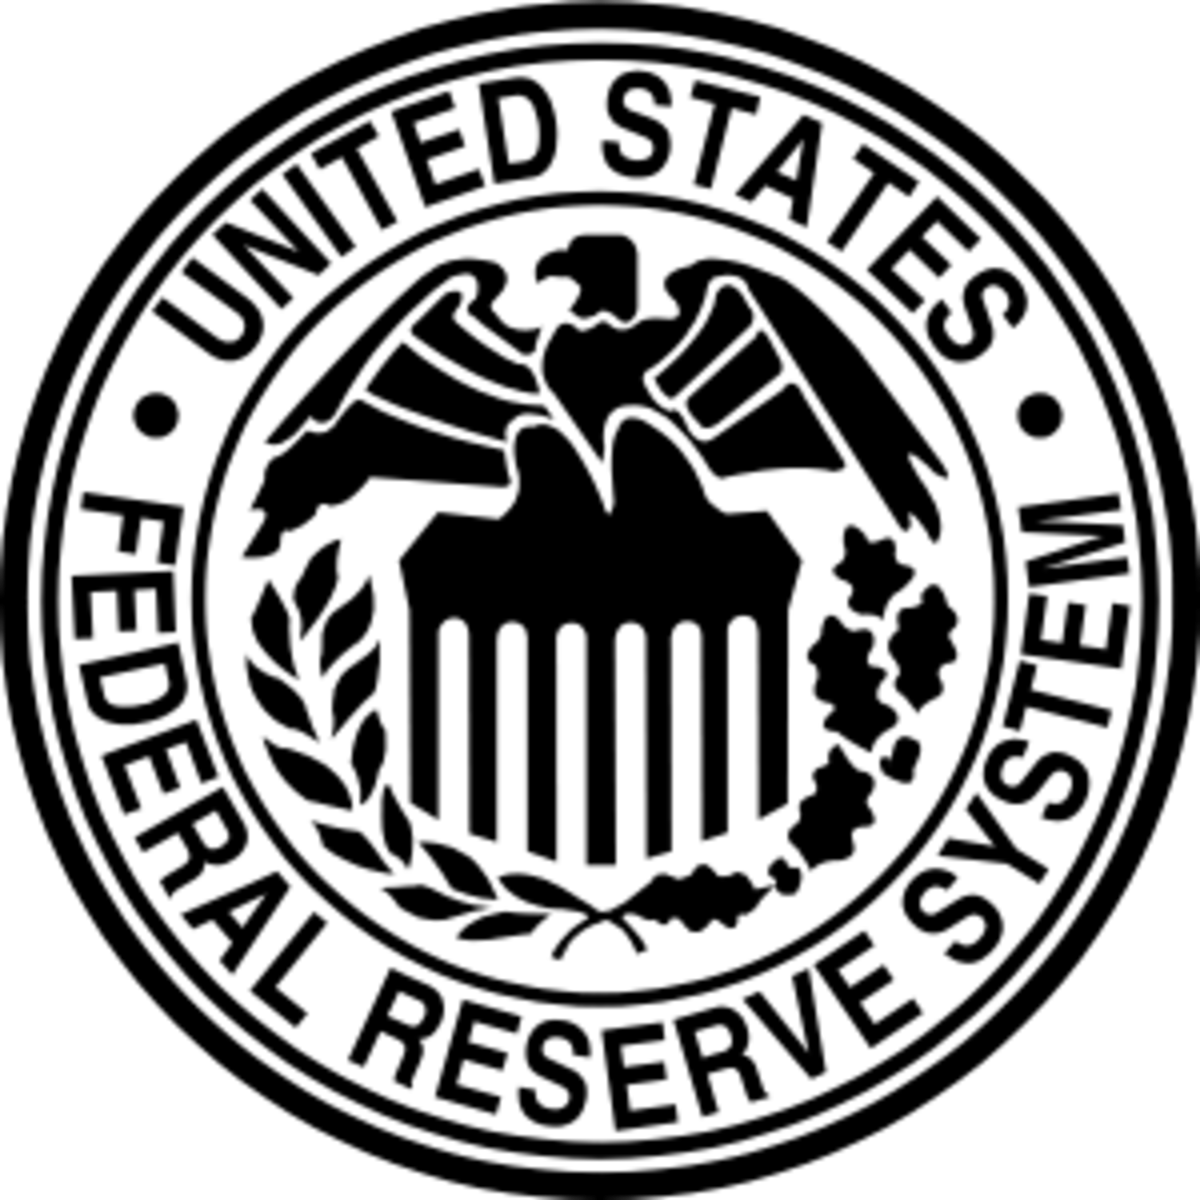 The United States allows a privately owned bank to print our currency, which it then allows the U.S. to borrow and pay back with interest!